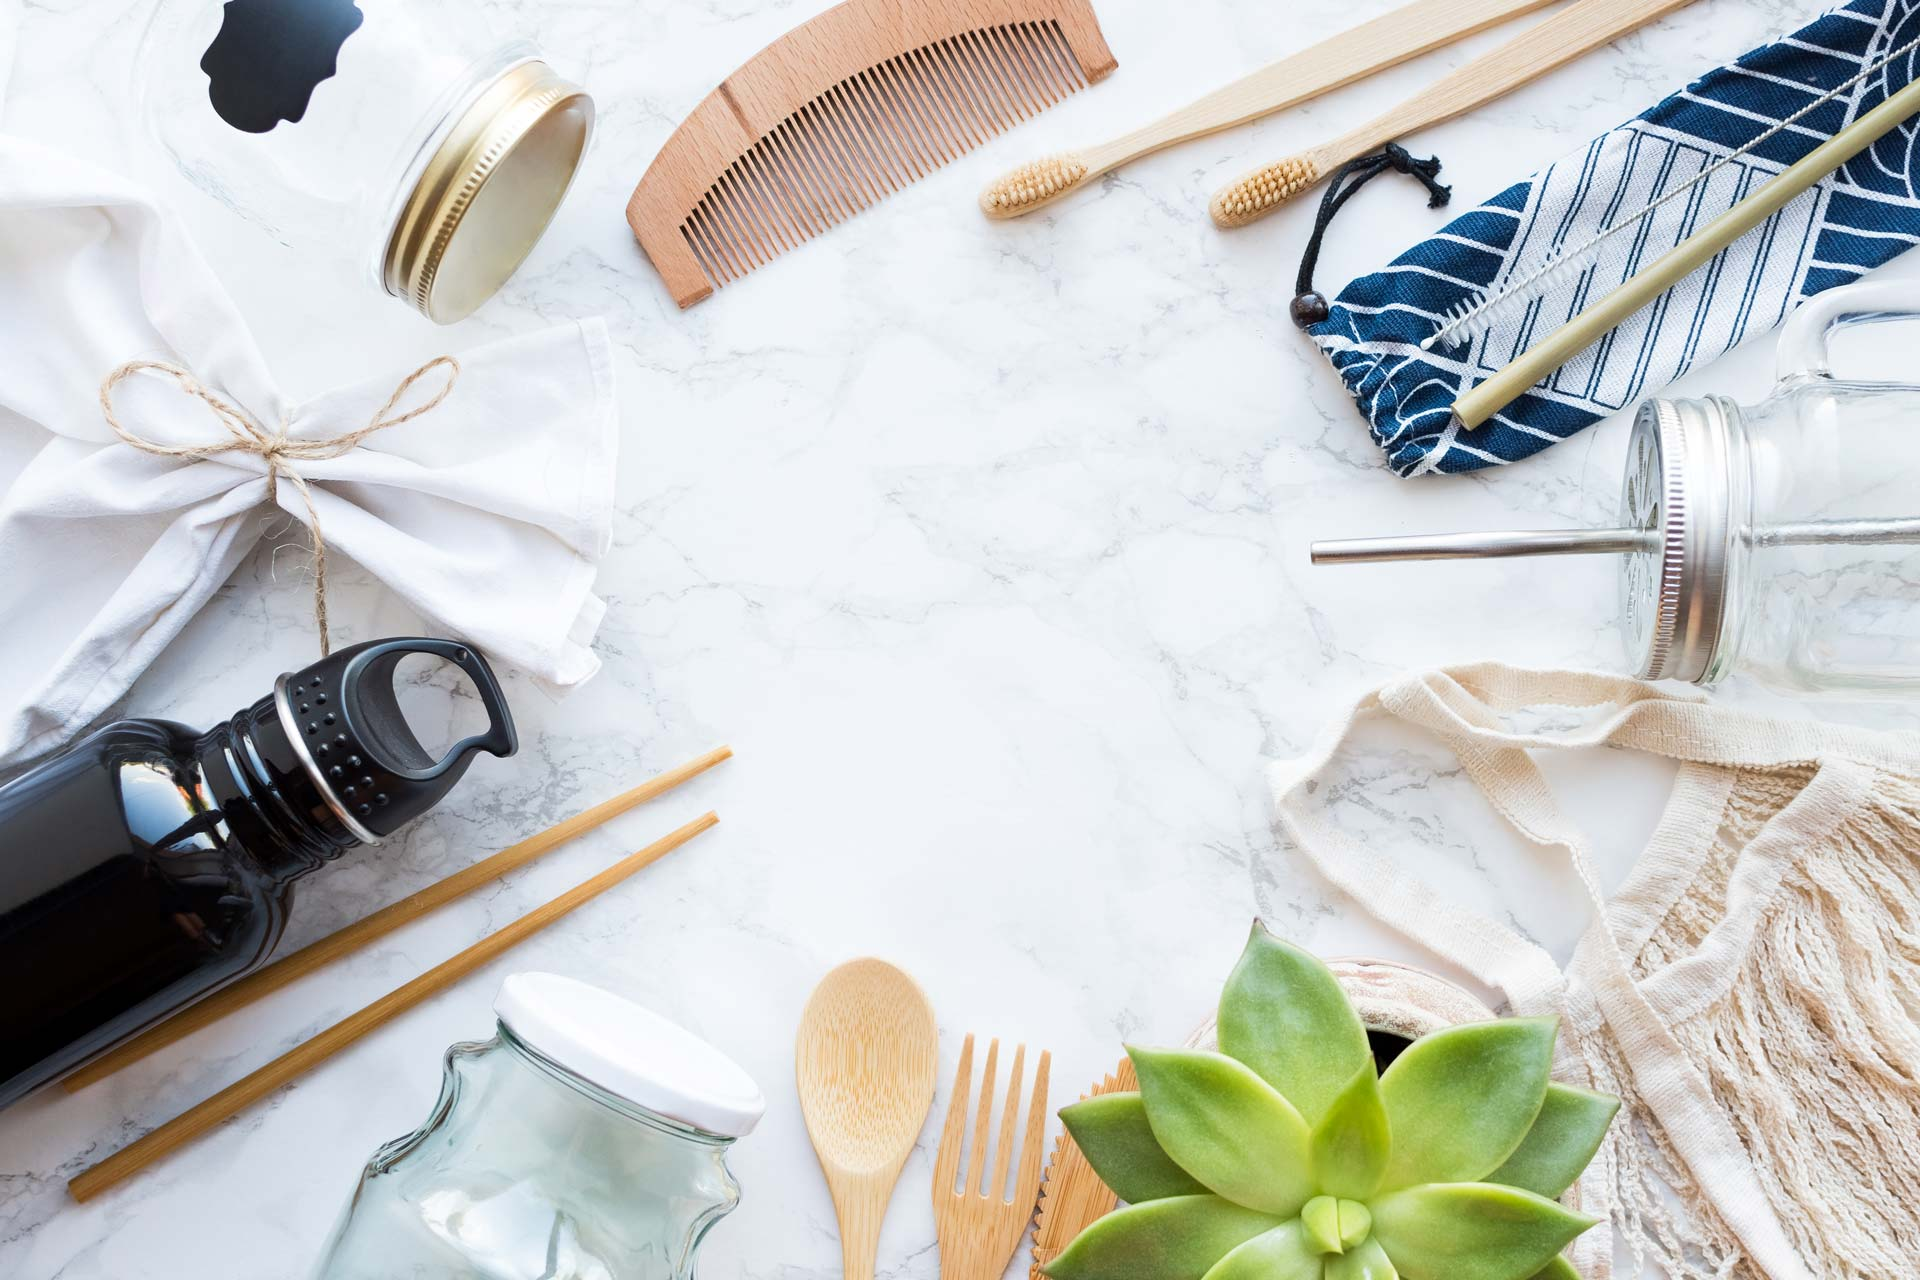 Sustainable living ideas flatlay with wooden utensils, succulent, and glass bottles